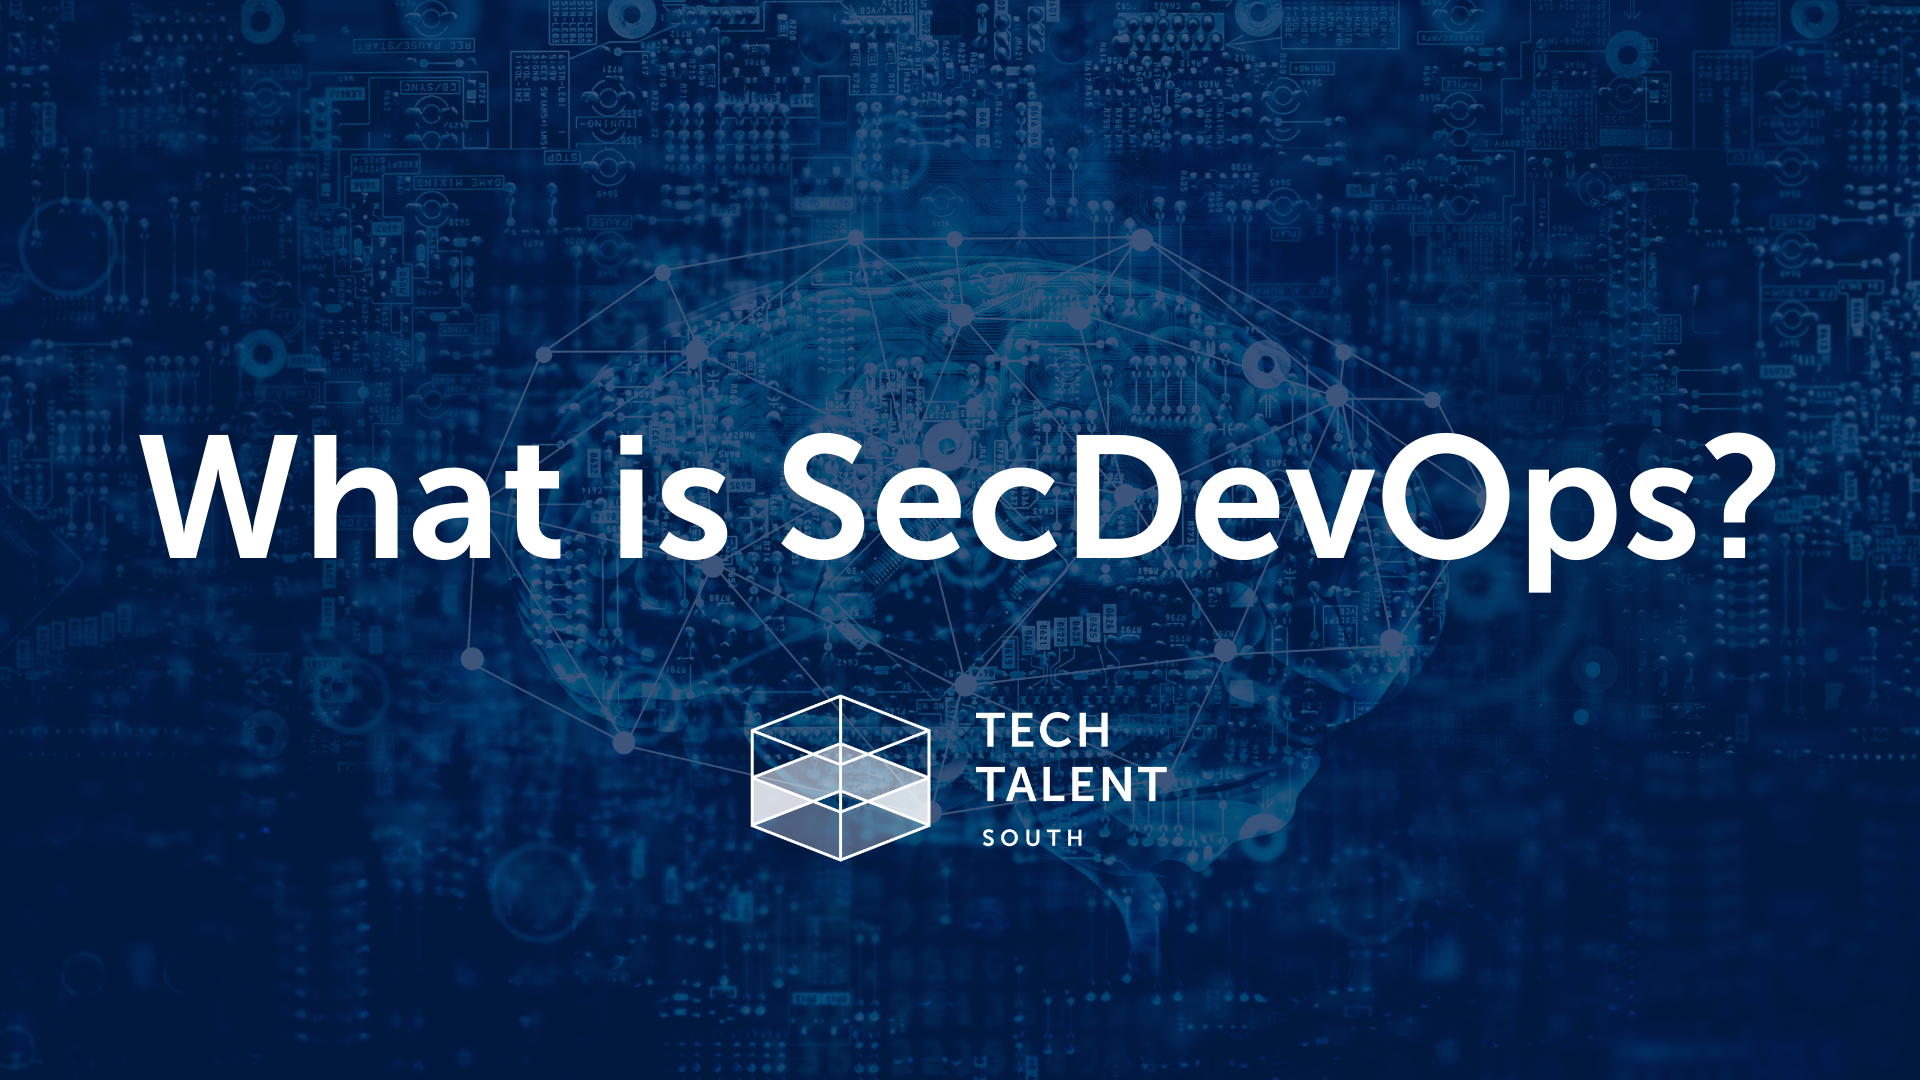 SecDevOps is a new approach to technological processes and infrastructure.